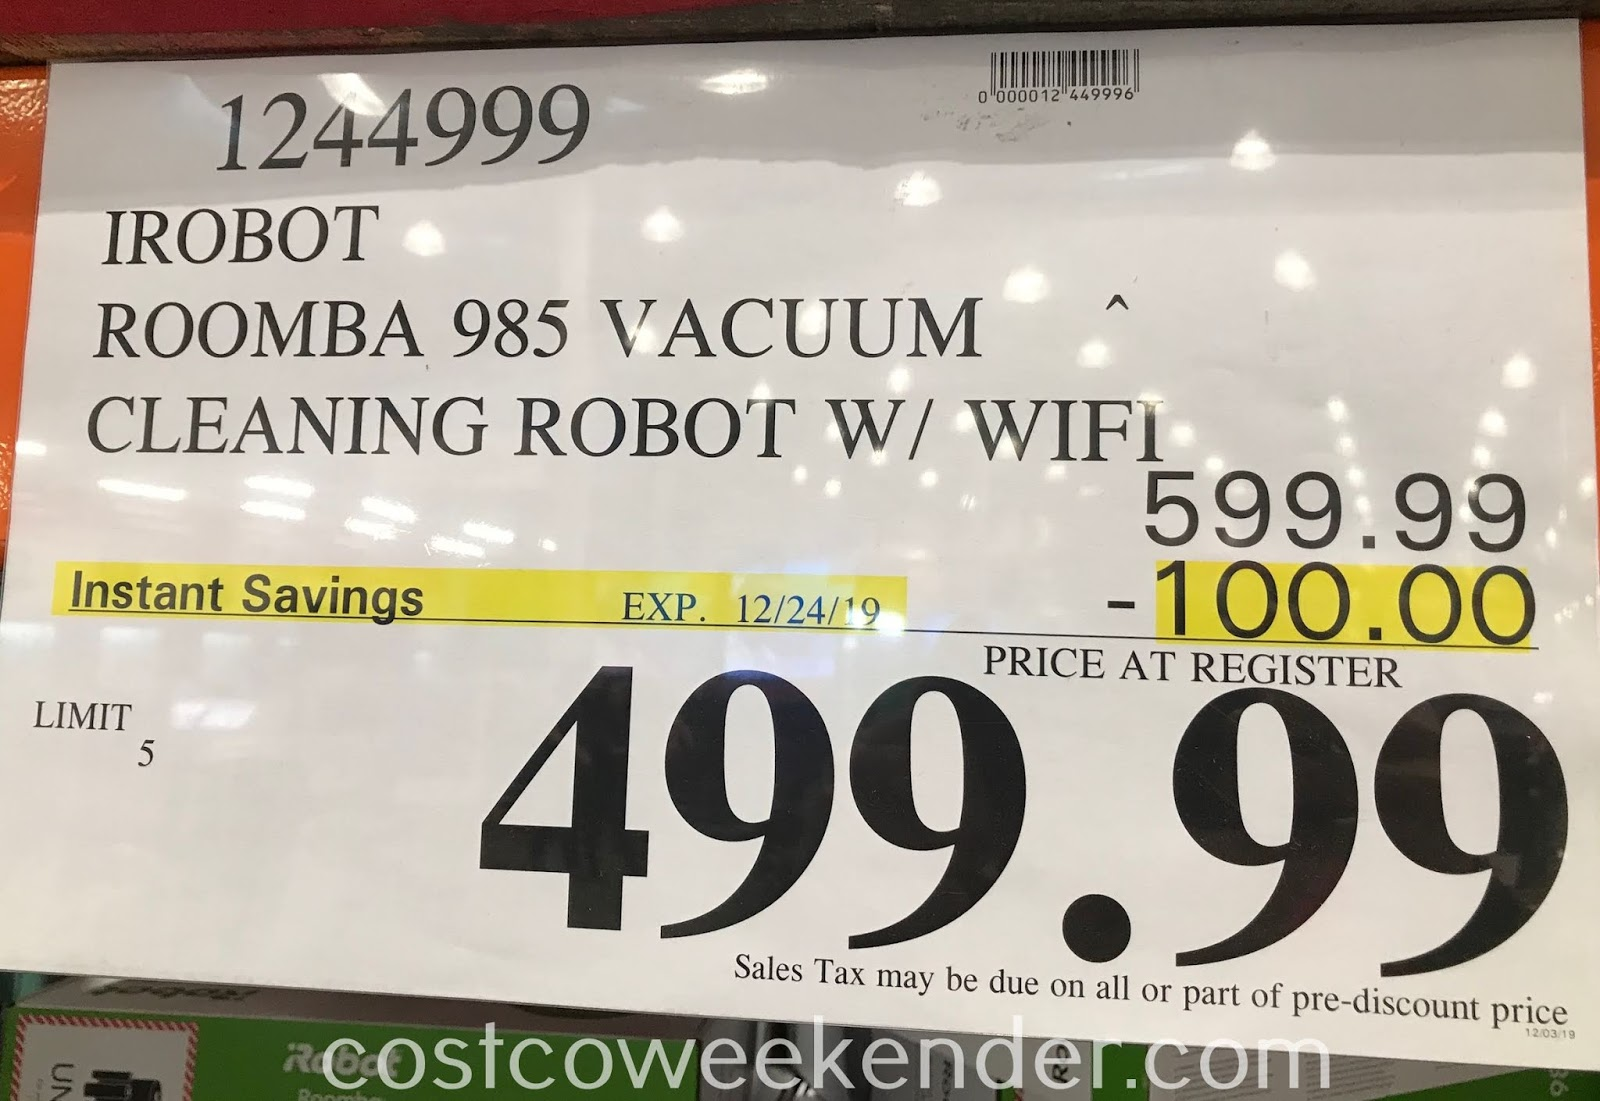 Deal for the iRobot Roomba 985 Robot Vacuum at Costco